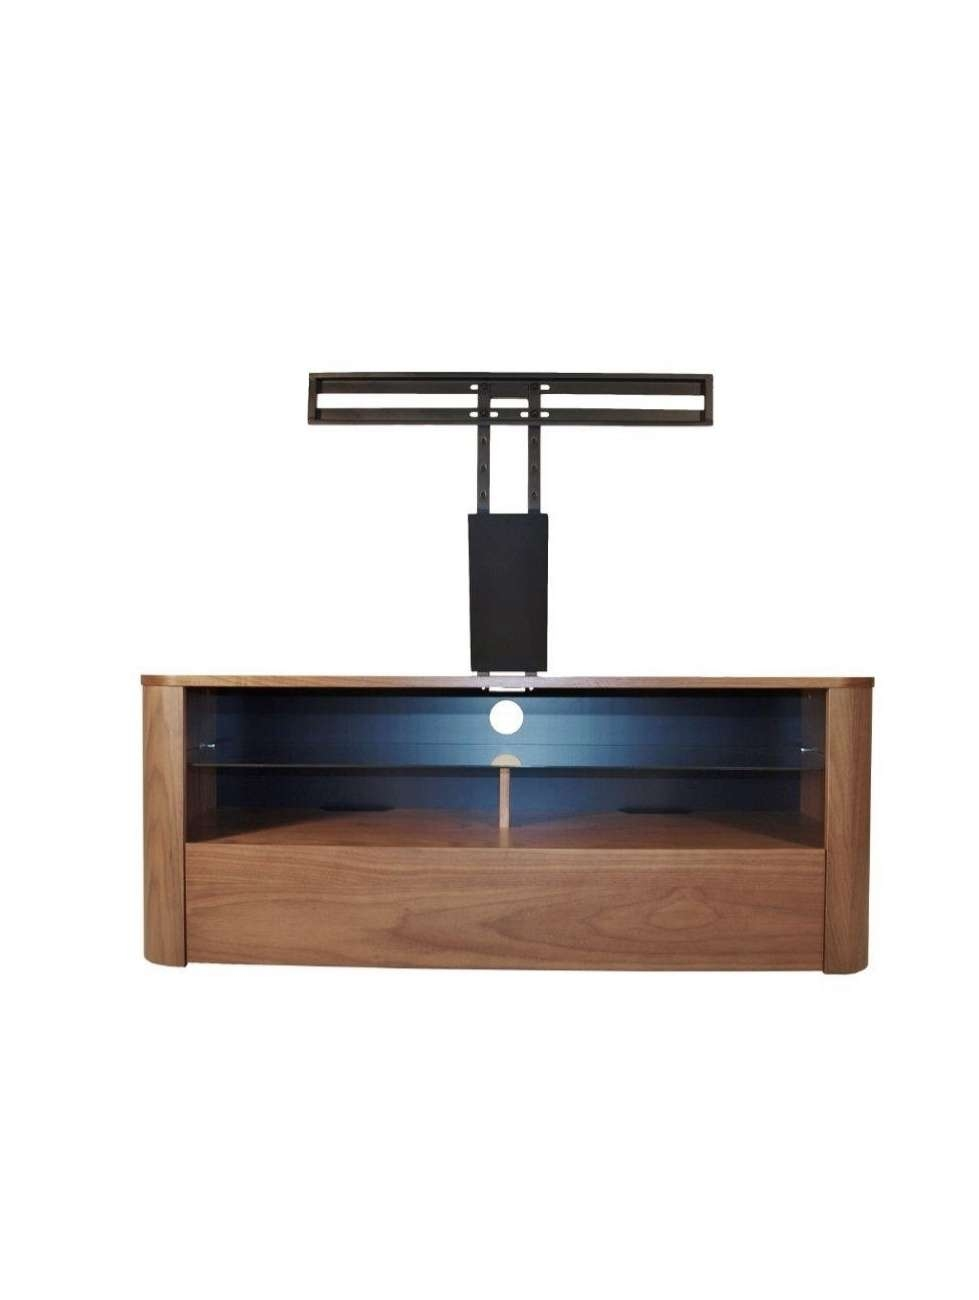 Alphason Hugo Tv Stand Adh1260 Wal Walnut With Bracket | 121 Tv Mounts Throughout Walnut Tv Cabinets (View 1 of 20)